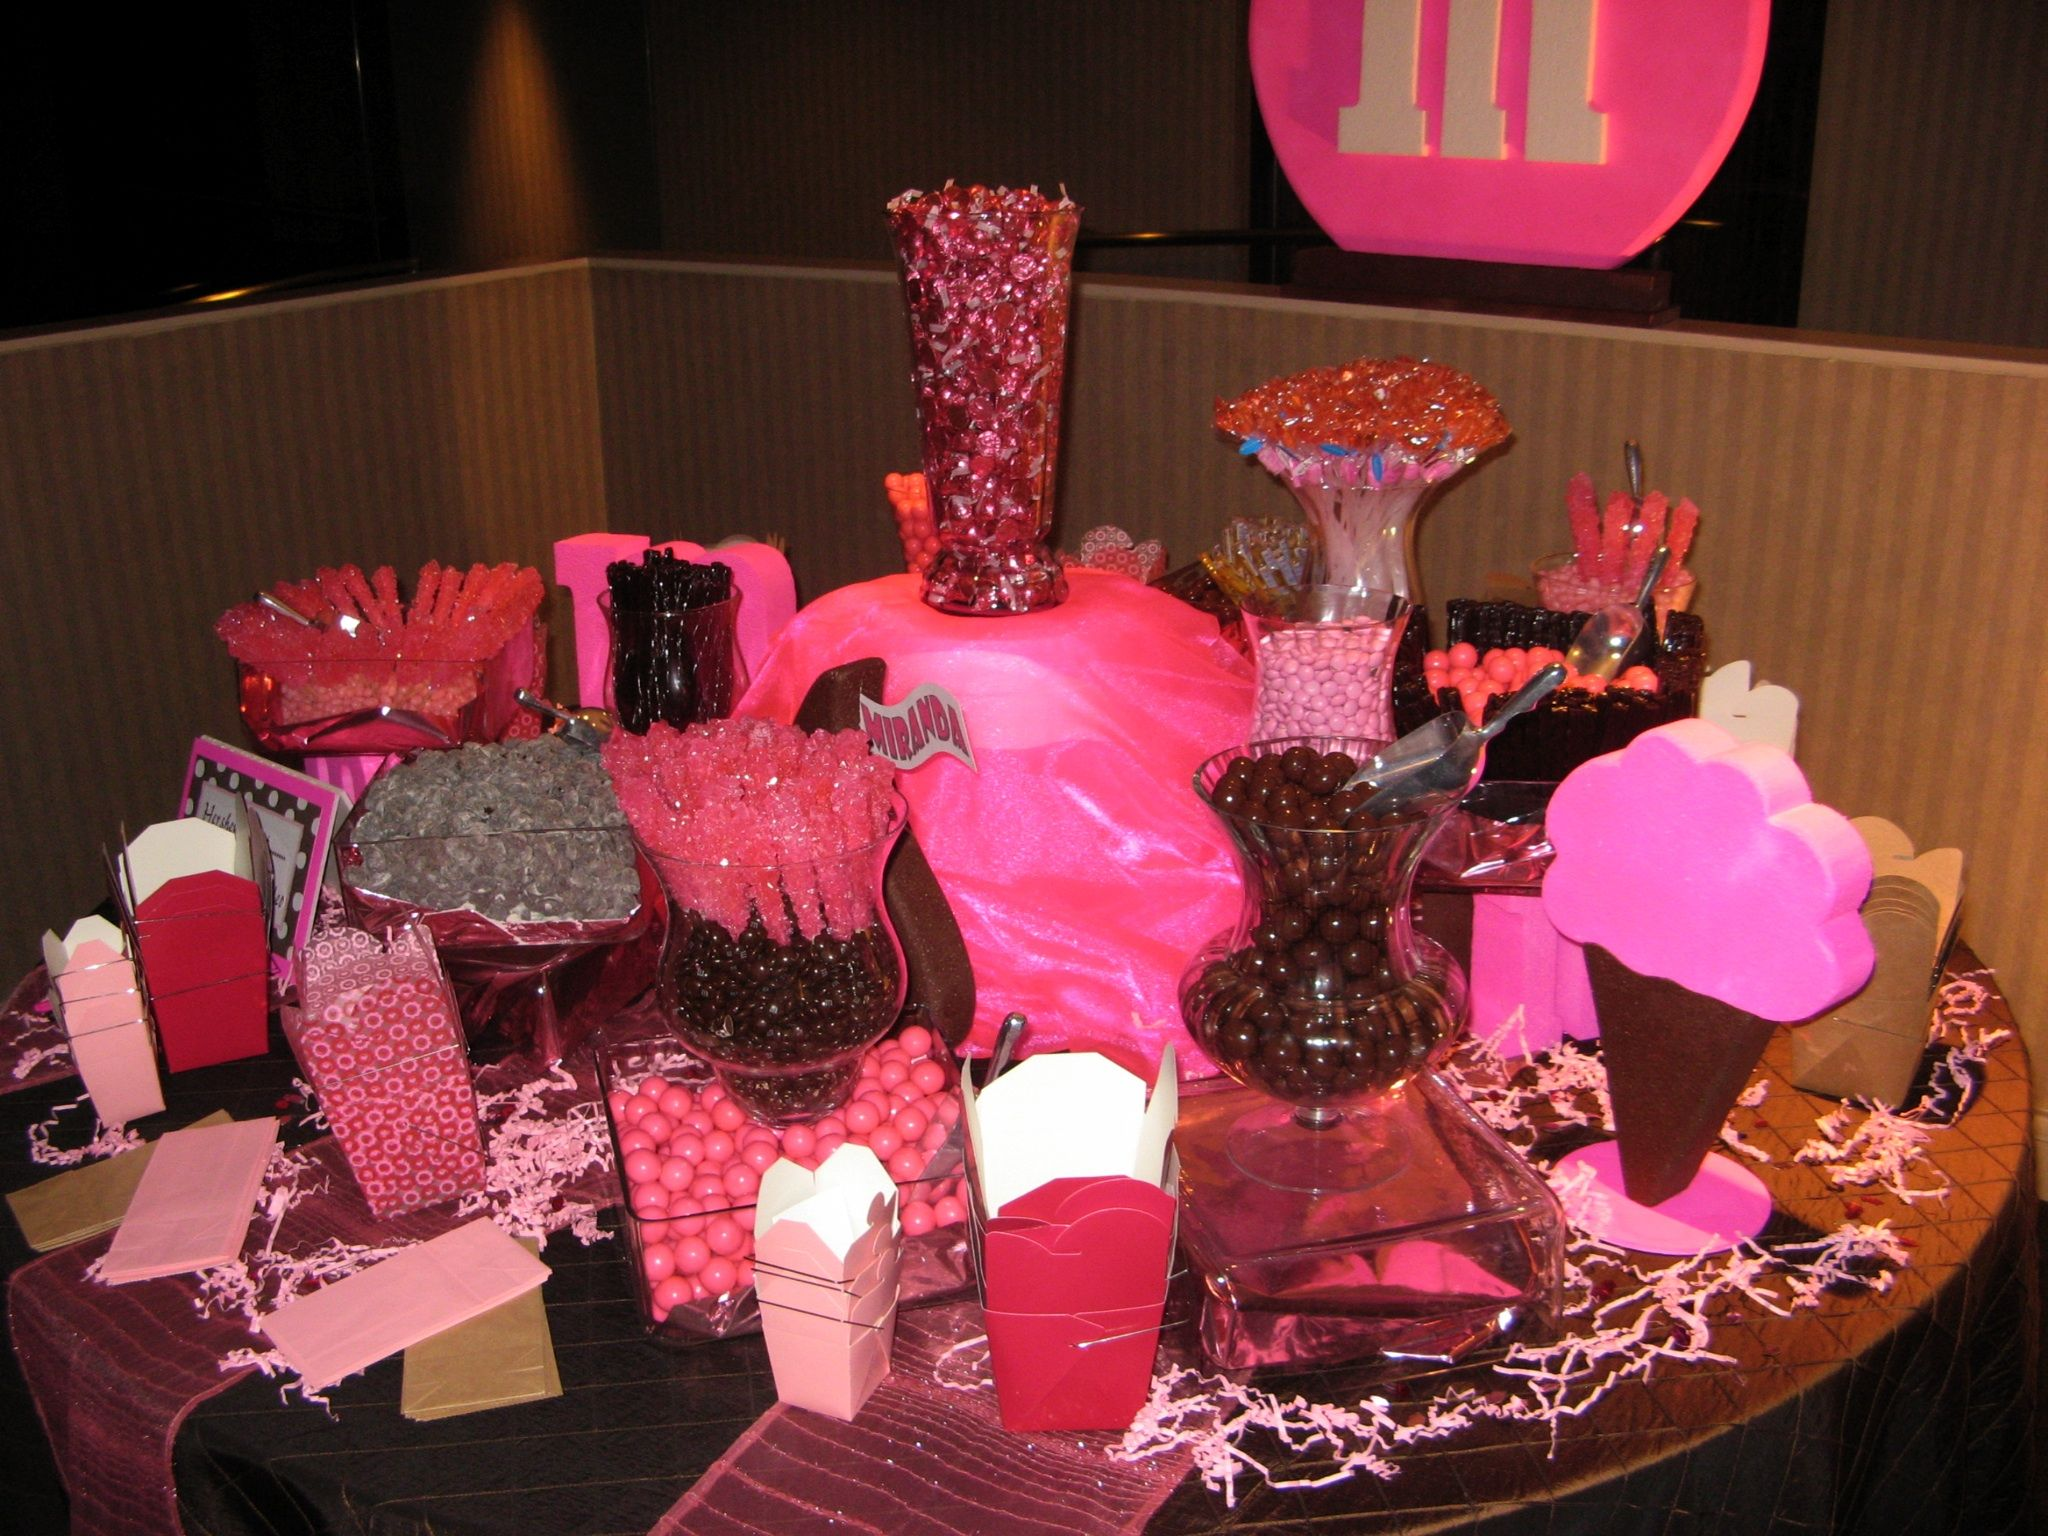 Paris decorations for quinceaneras - Quinceanera Candy Bar By Ideal Party Decorators Www Idealpartydecorators Com